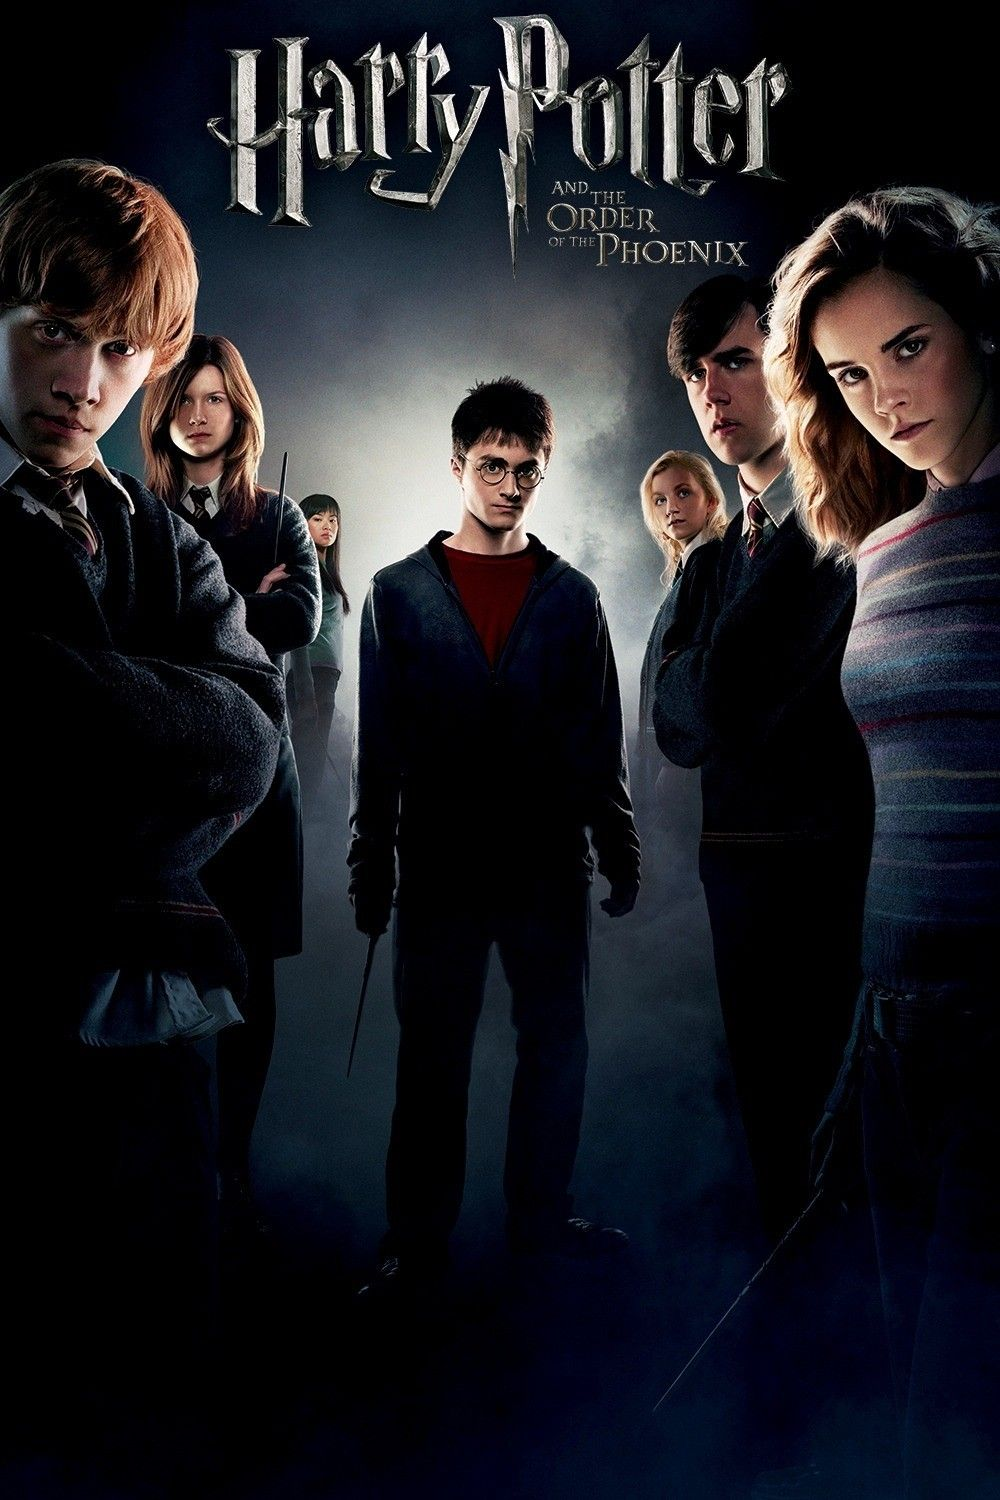 Harry Potter And The Order Of The Phoenix 2007 Harry Potter 5 Harry Potter Movie Posters Harry Potter Movies